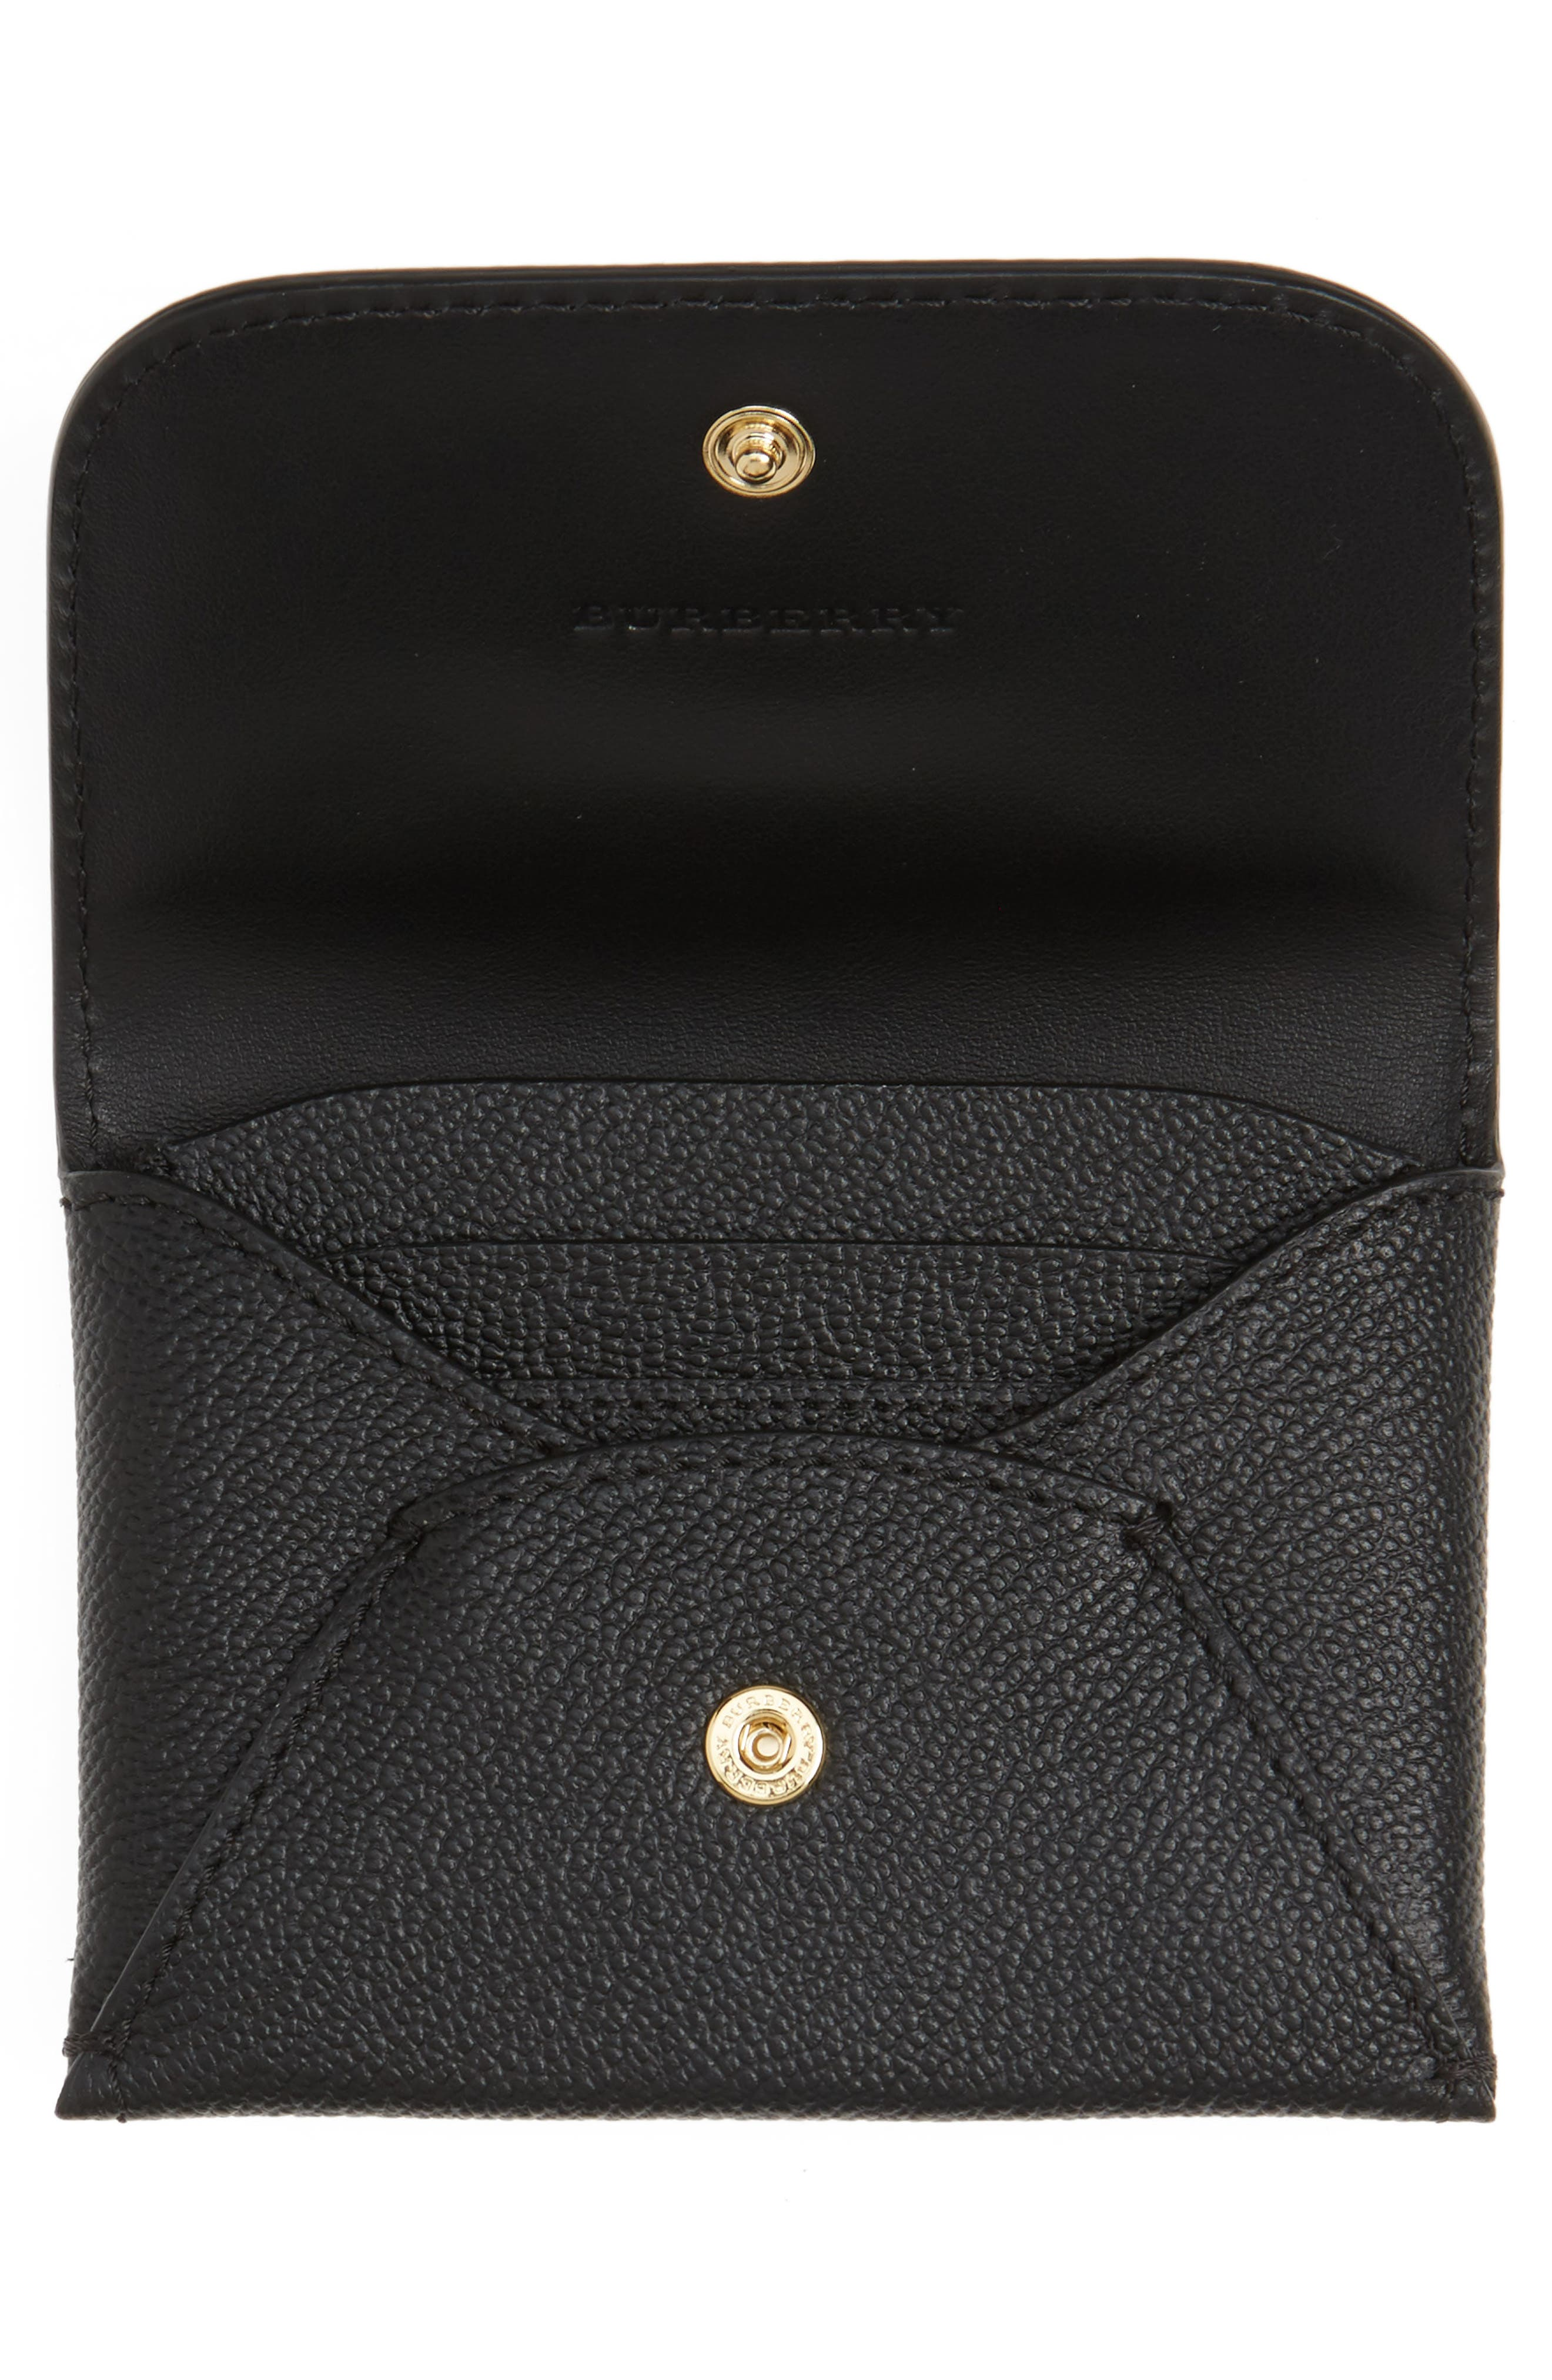 Mayfield Leather Card Case,                             Alternate thumbnail 2, color,                             Black